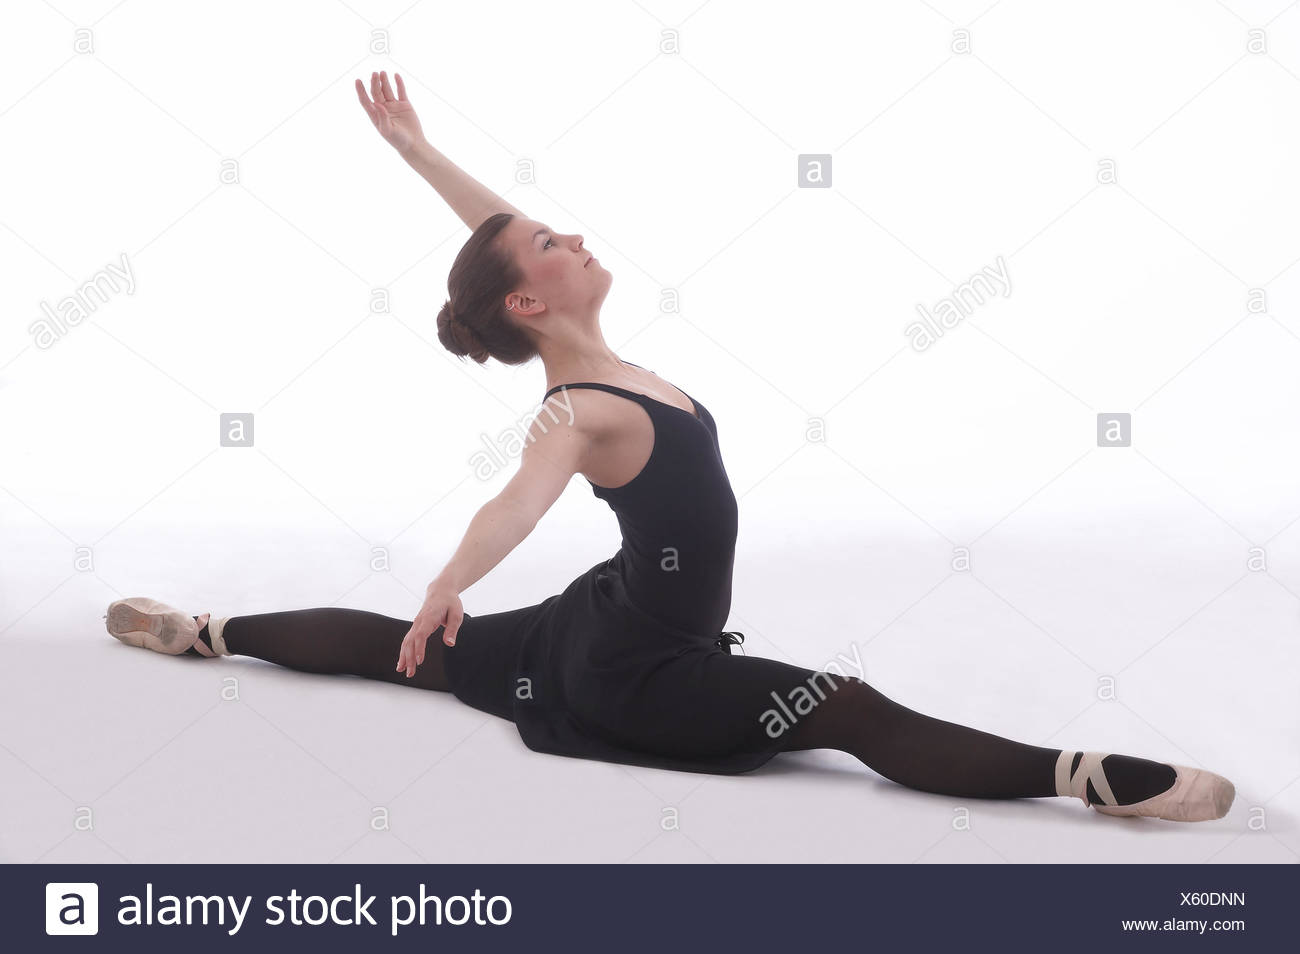 balancing act,ballet dancer - Stock Image